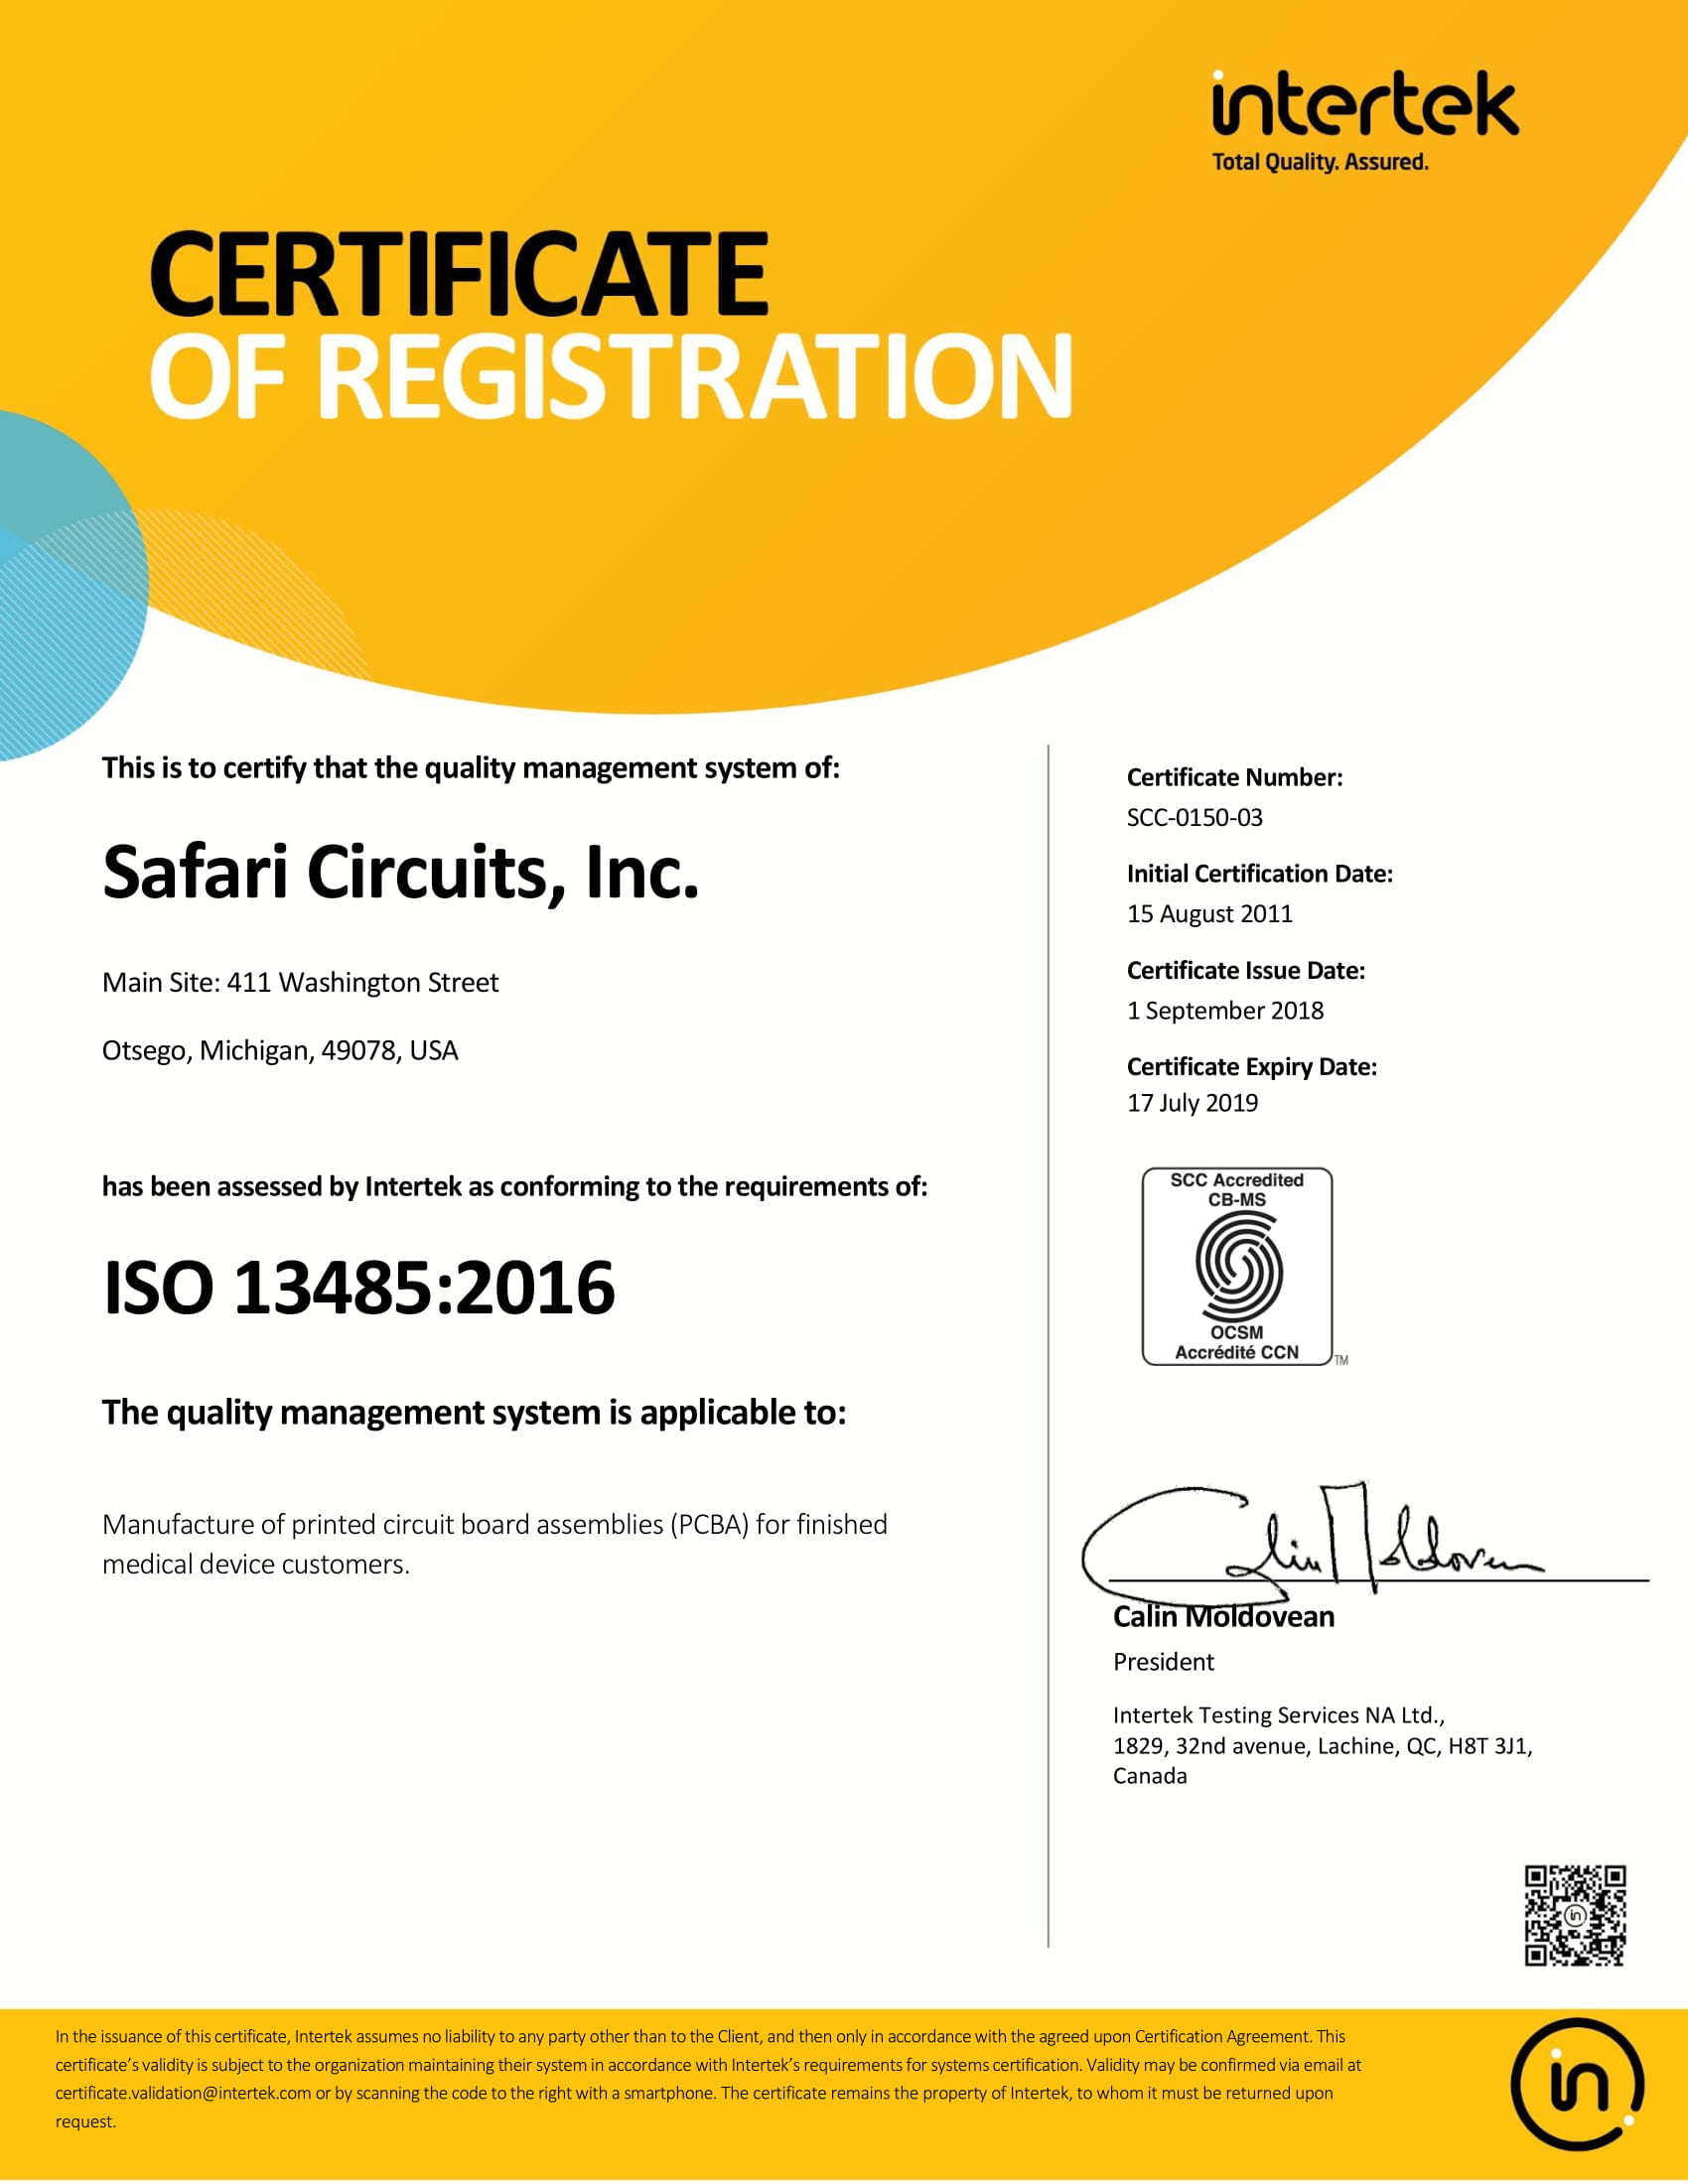 ISO 13485 Registration at Safari Circuits